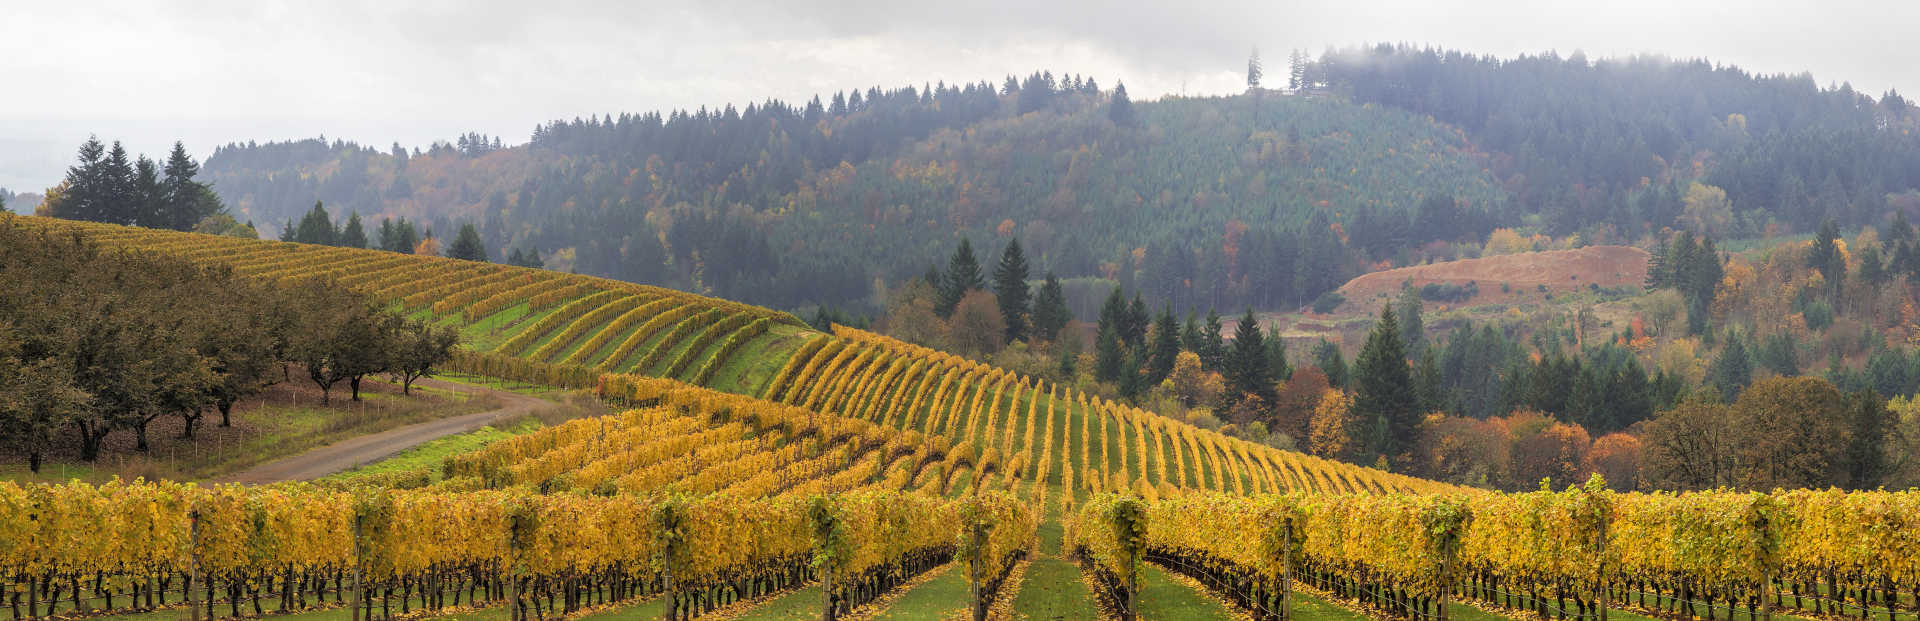 Image for Willamette Valley Wine Oregon content section